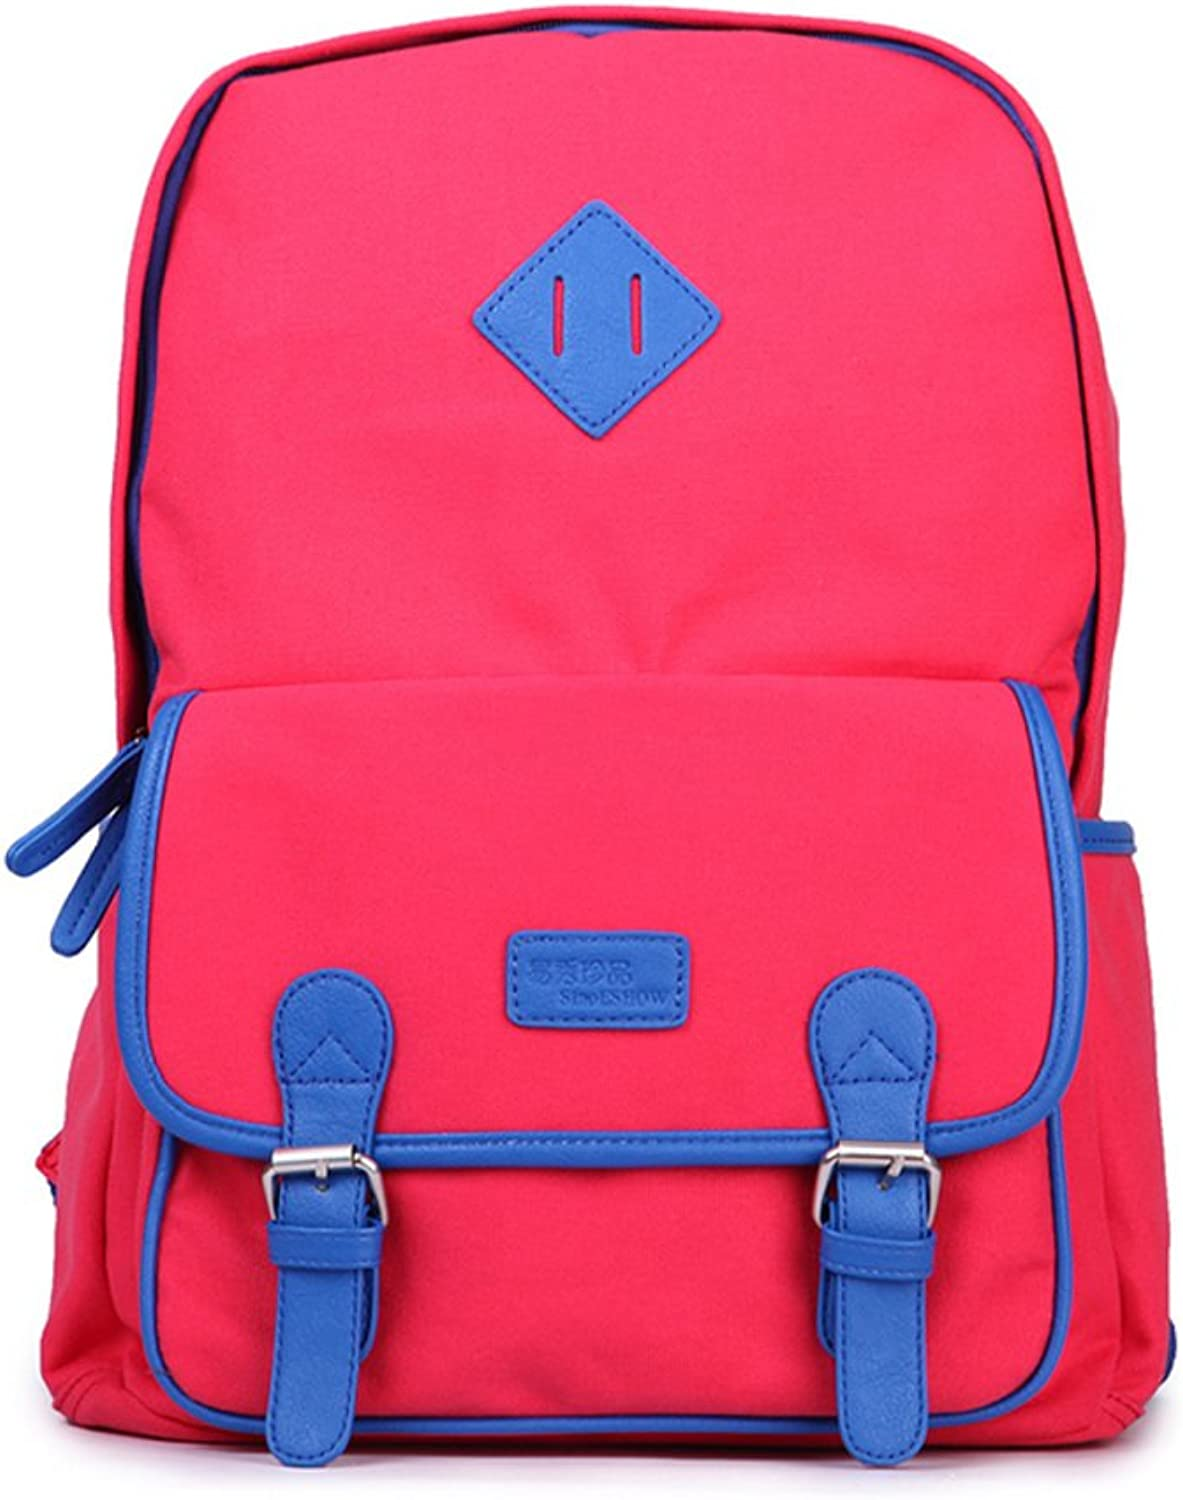 Candycolord canvas shoulder bags Fashion school bags Sport BackpackC